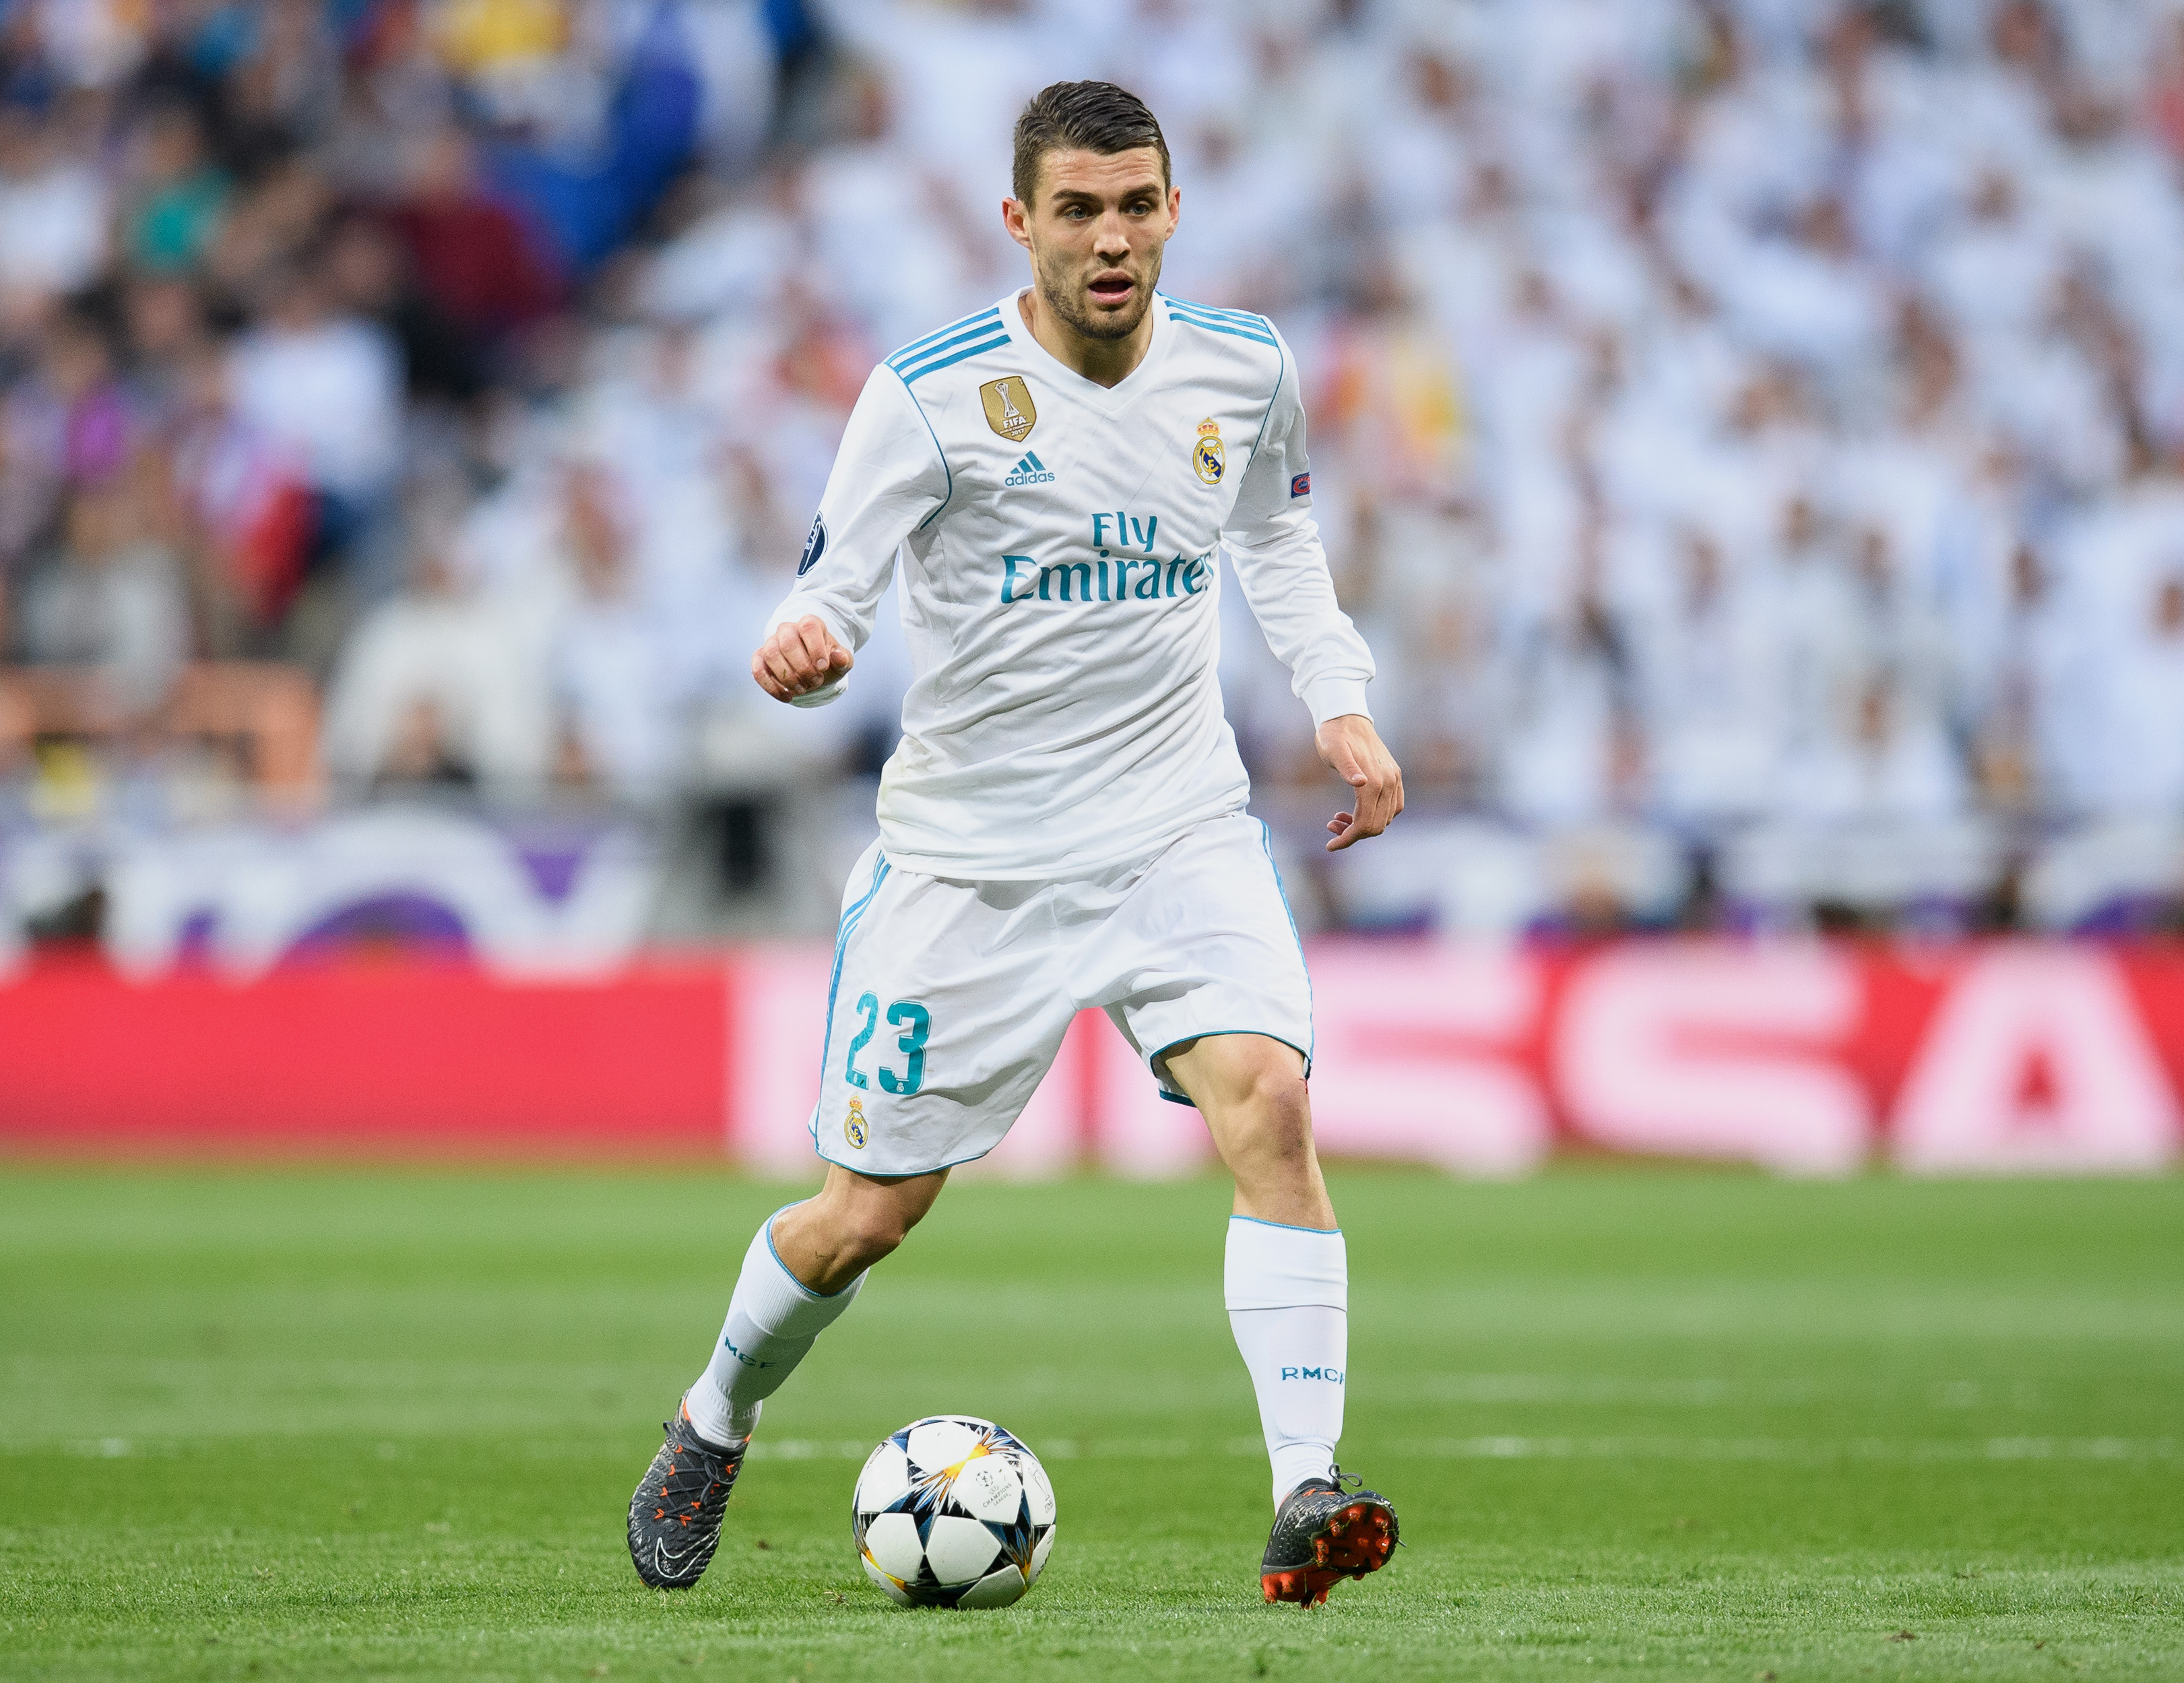 Real Madrid midfielder Kovacic joins Chelsea